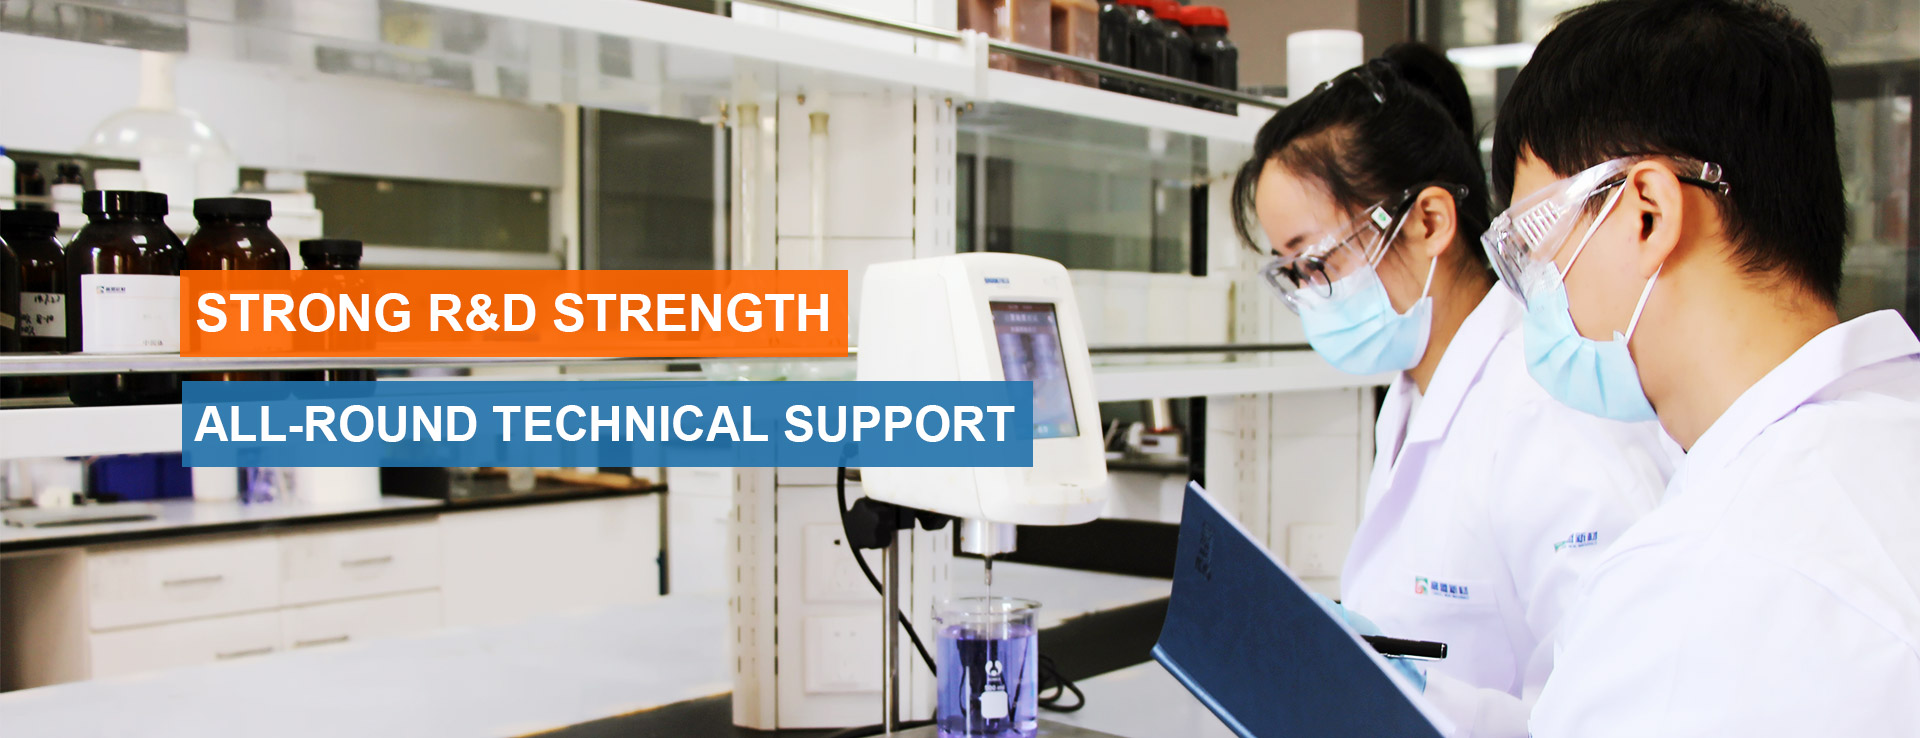 Strong R&D Strength All-round Technical Support